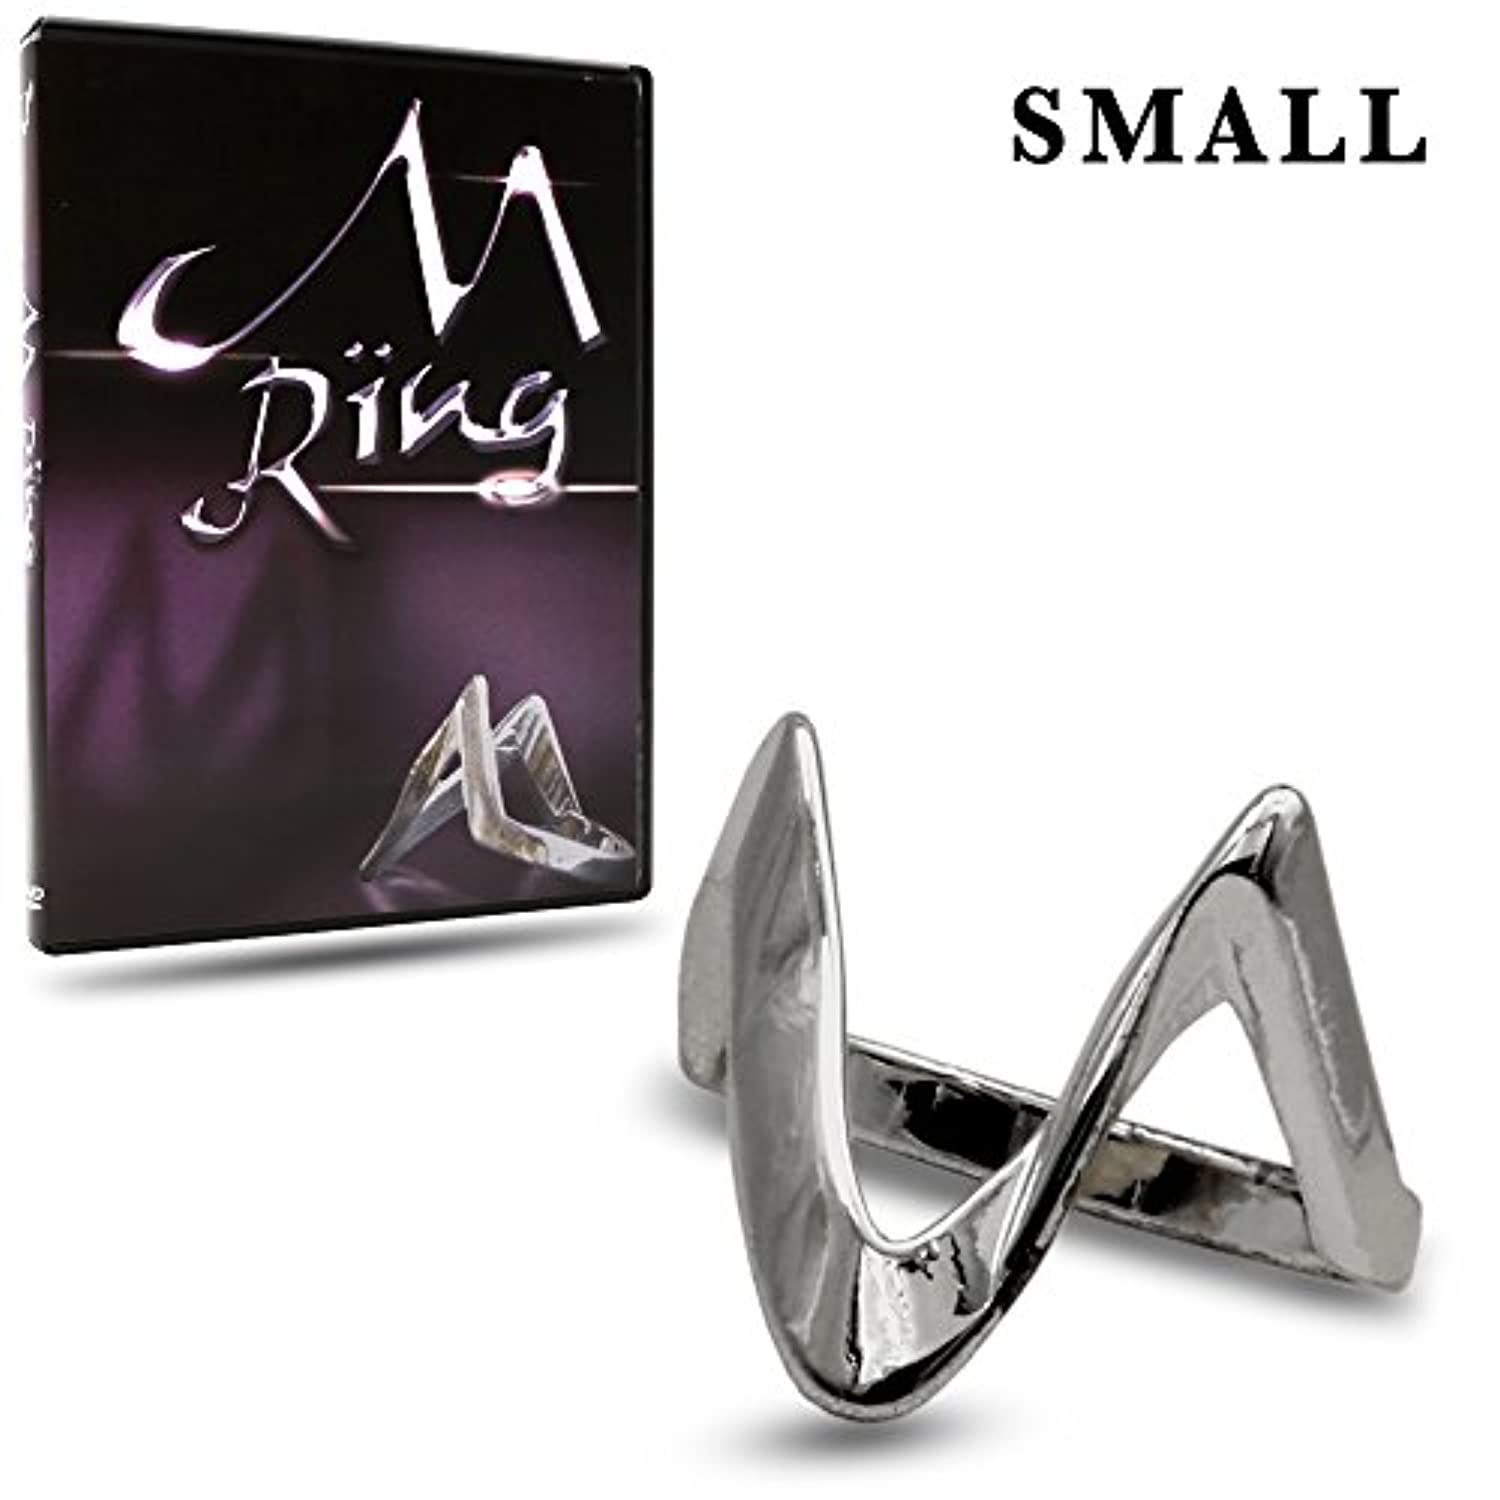 Magic Makers M Ring - Small Size (8 or 18.1 mm) - The Ultimate Hold Out Device